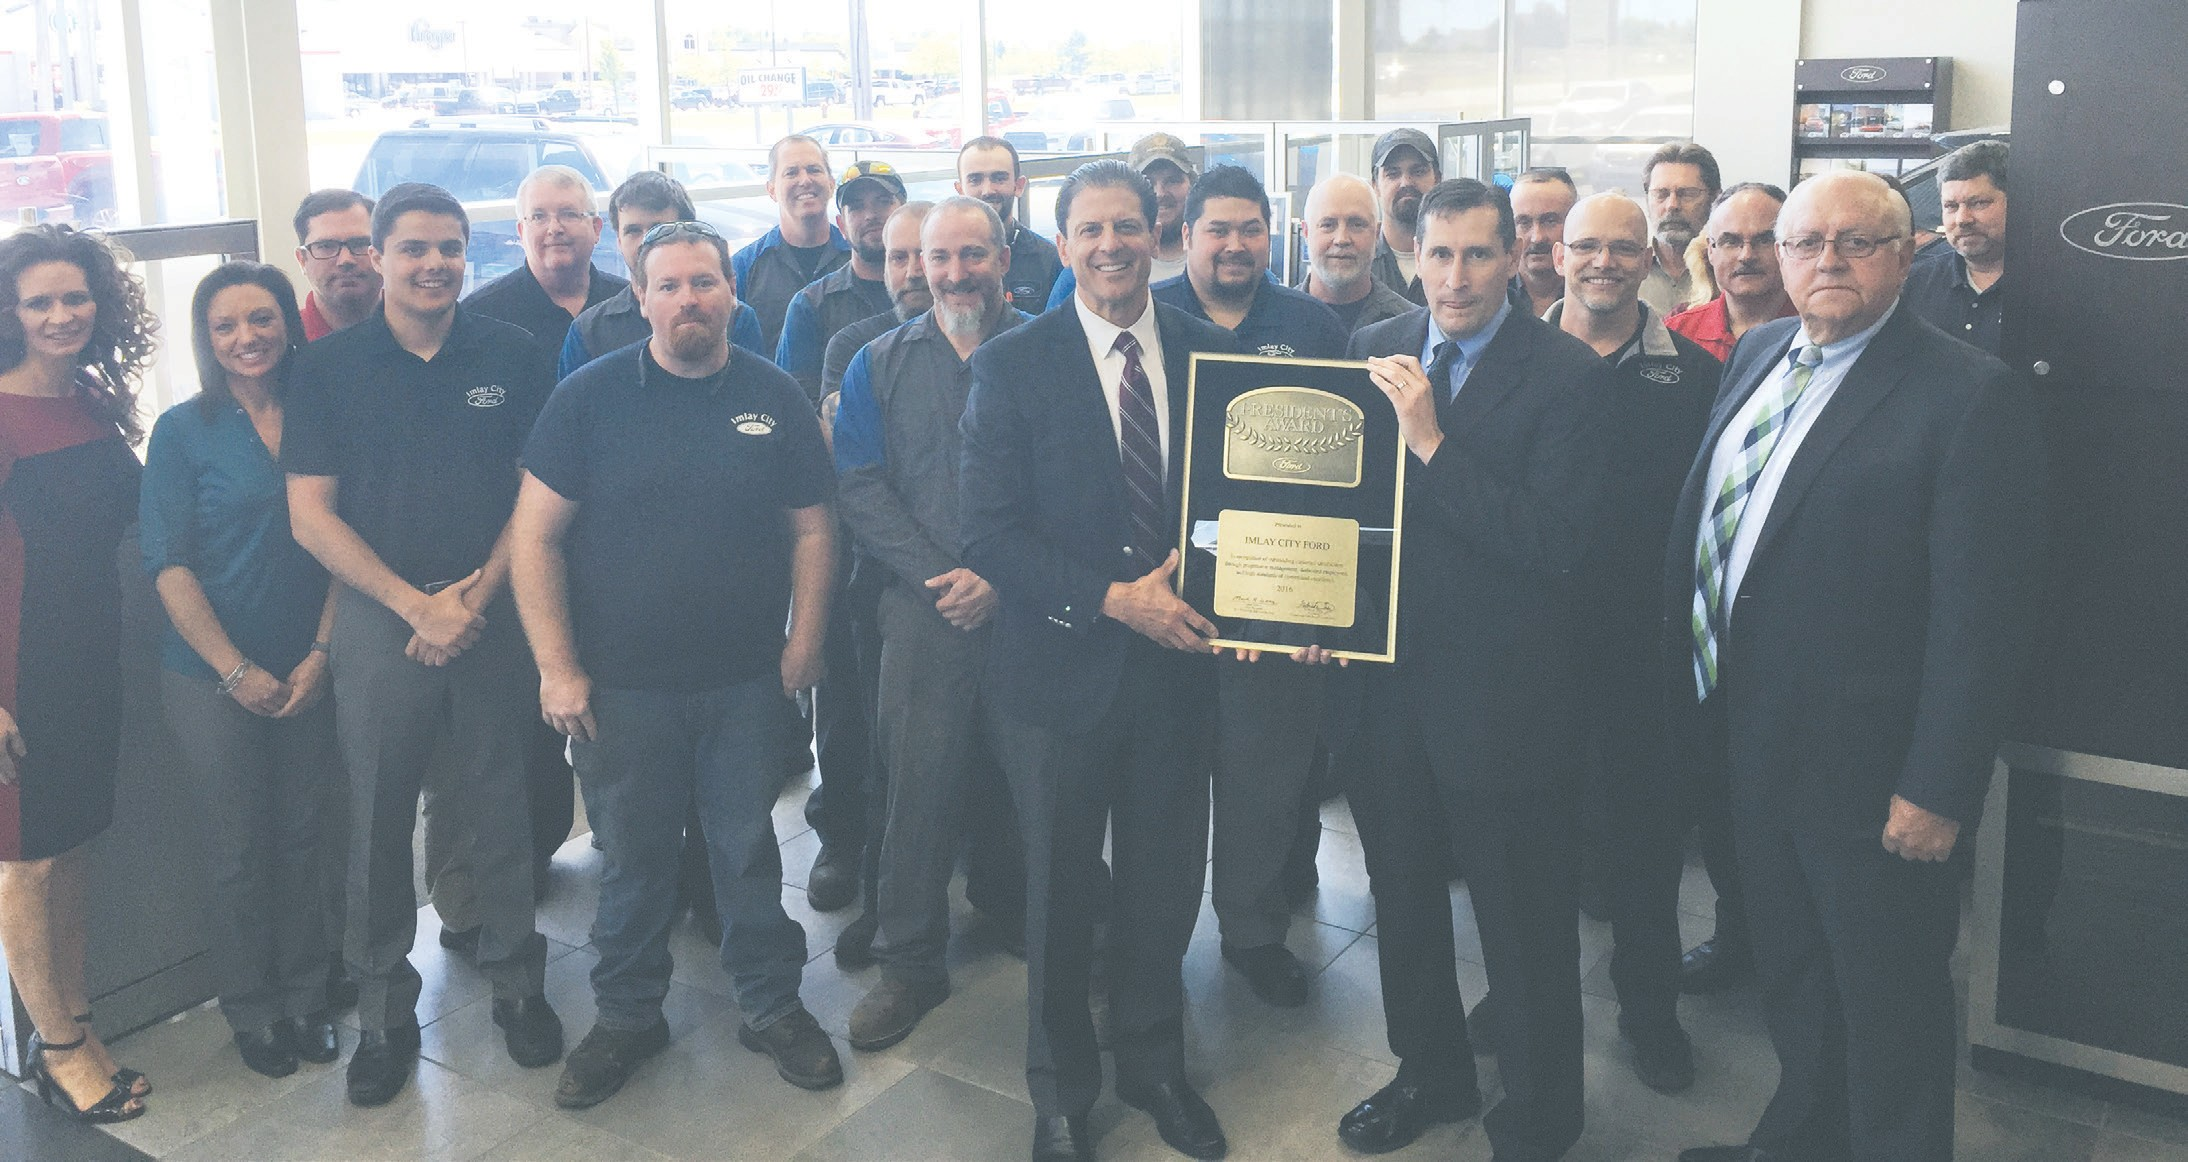 imlay city ford earns president s award for great service the county press the county press mihomepaper